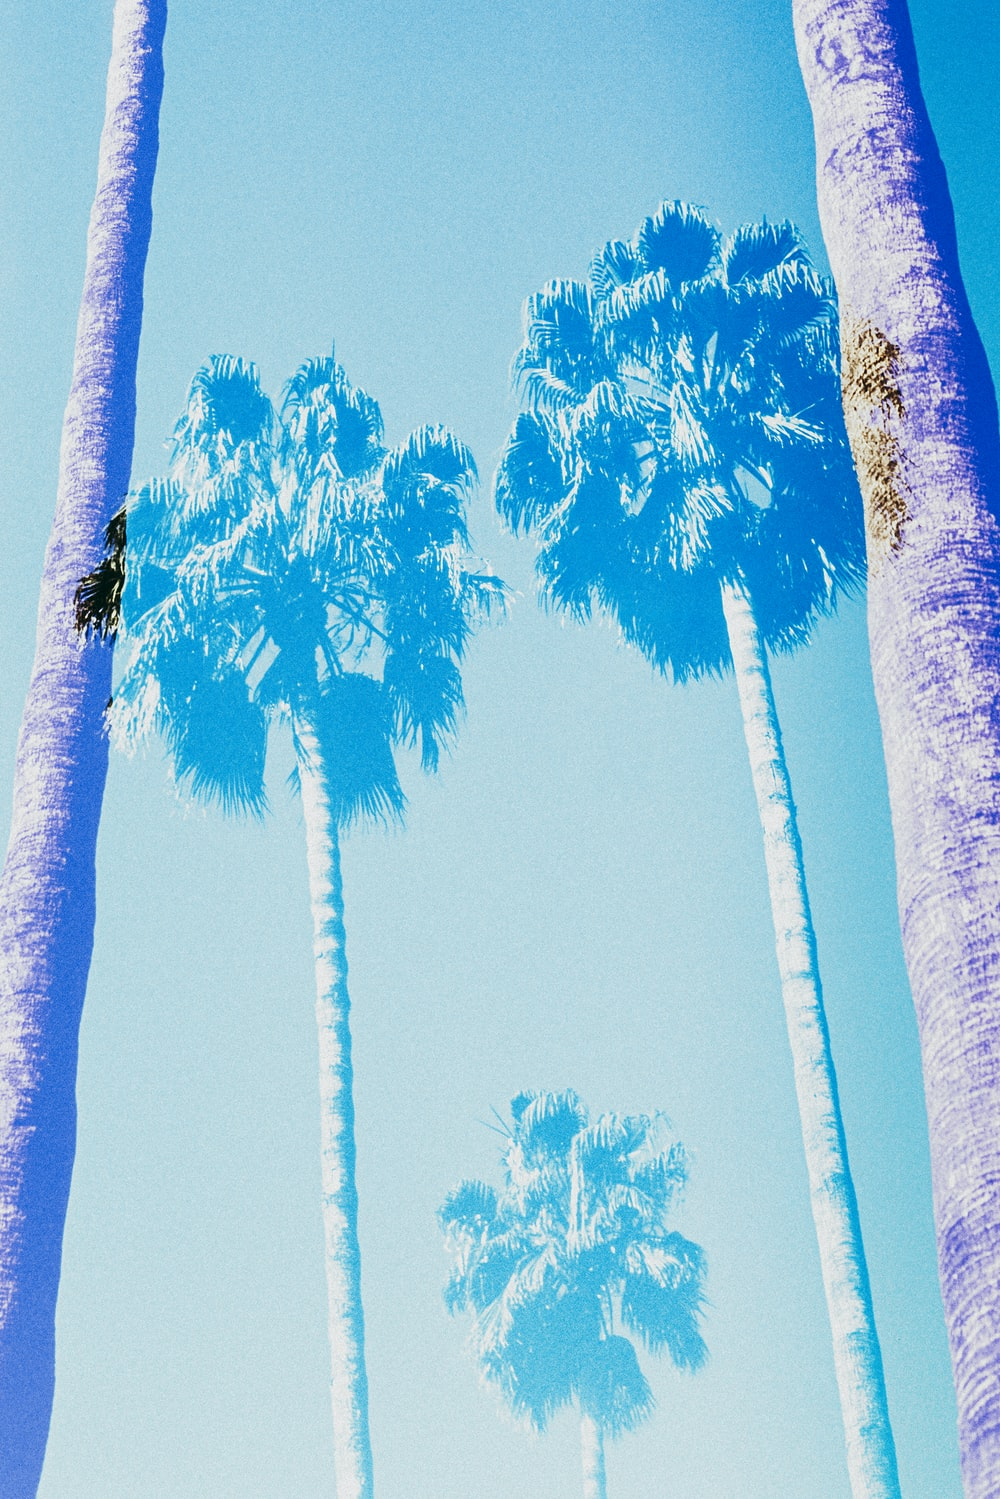 low angle photography of green palm trees under blue sky during daytime